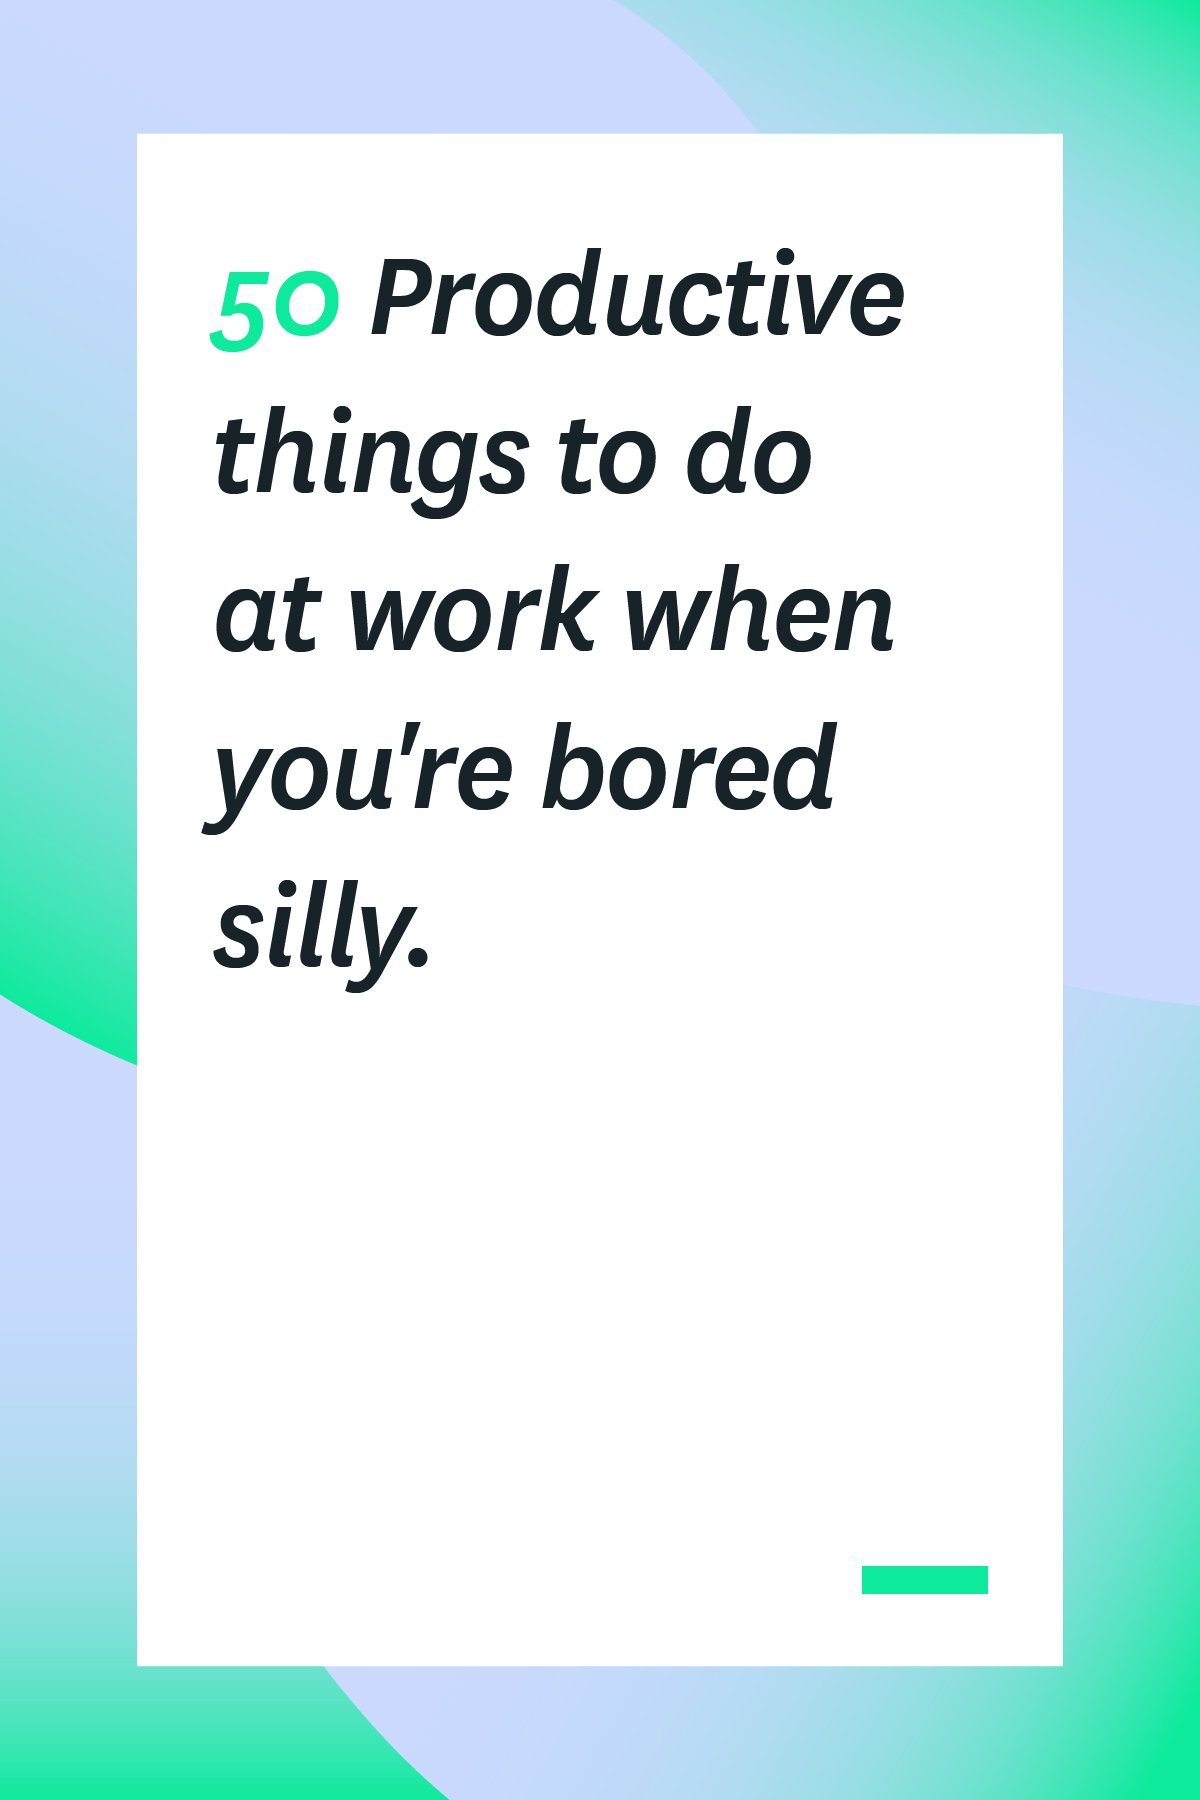 Bored at work? Here are 50 productive things to do when bored. These tasks will help you get ahead in your career and stand out at the office. #productivityhacks #workproductivity